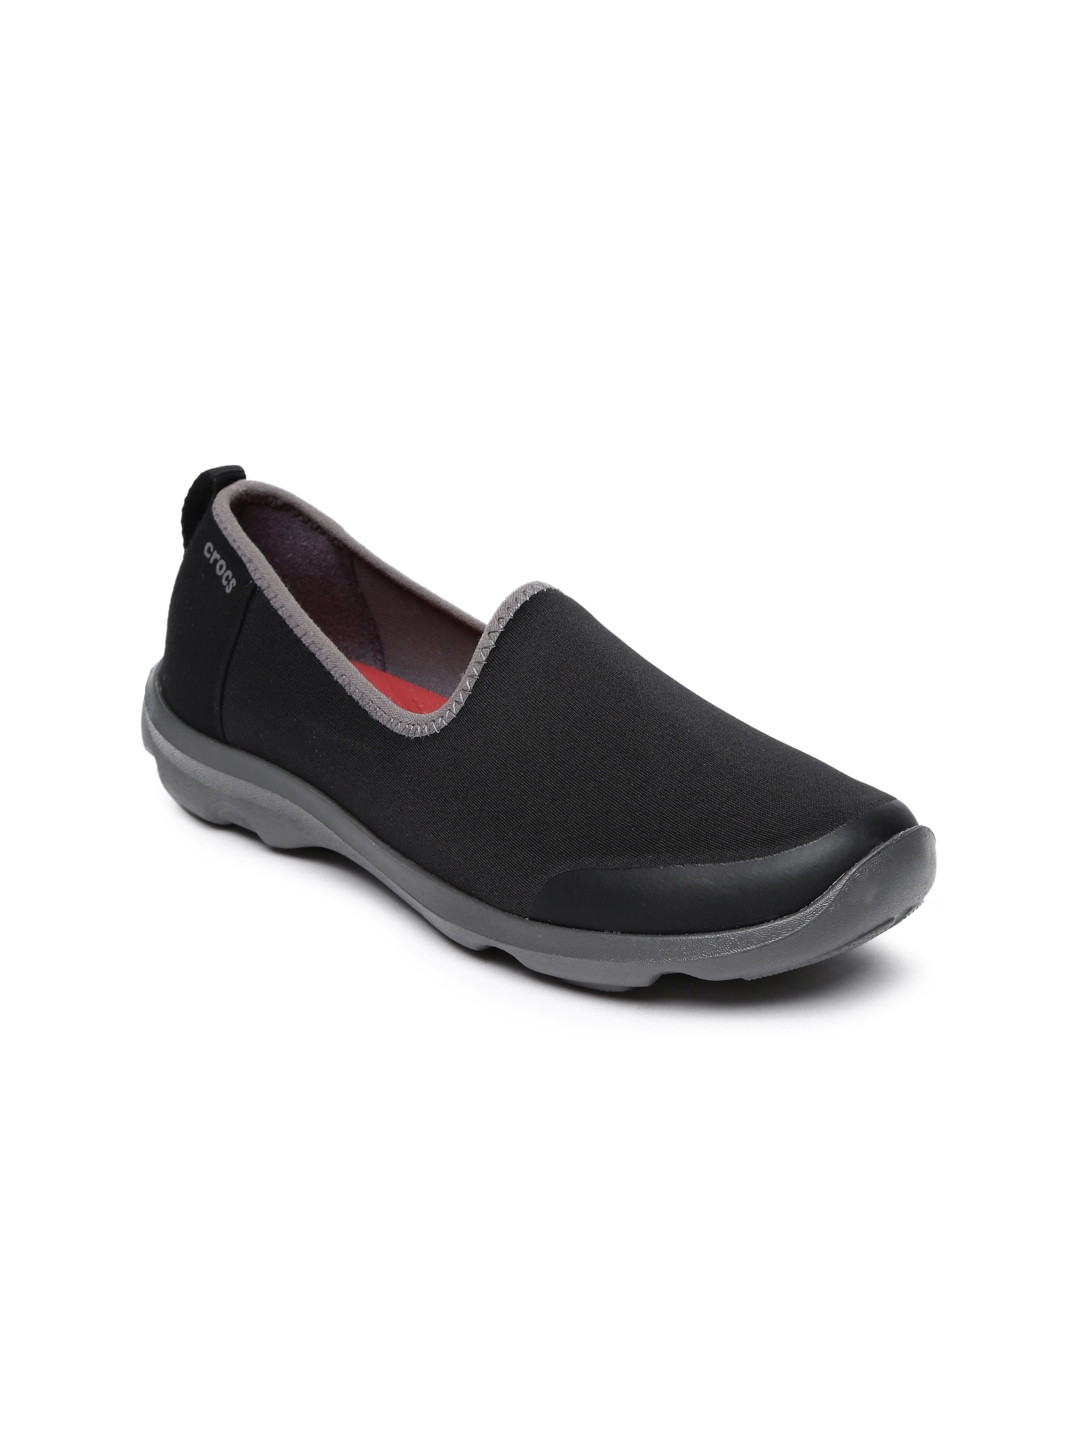 f7e77087bebac7 Crocs Footwear - Buy Crocs Footwear Online in India